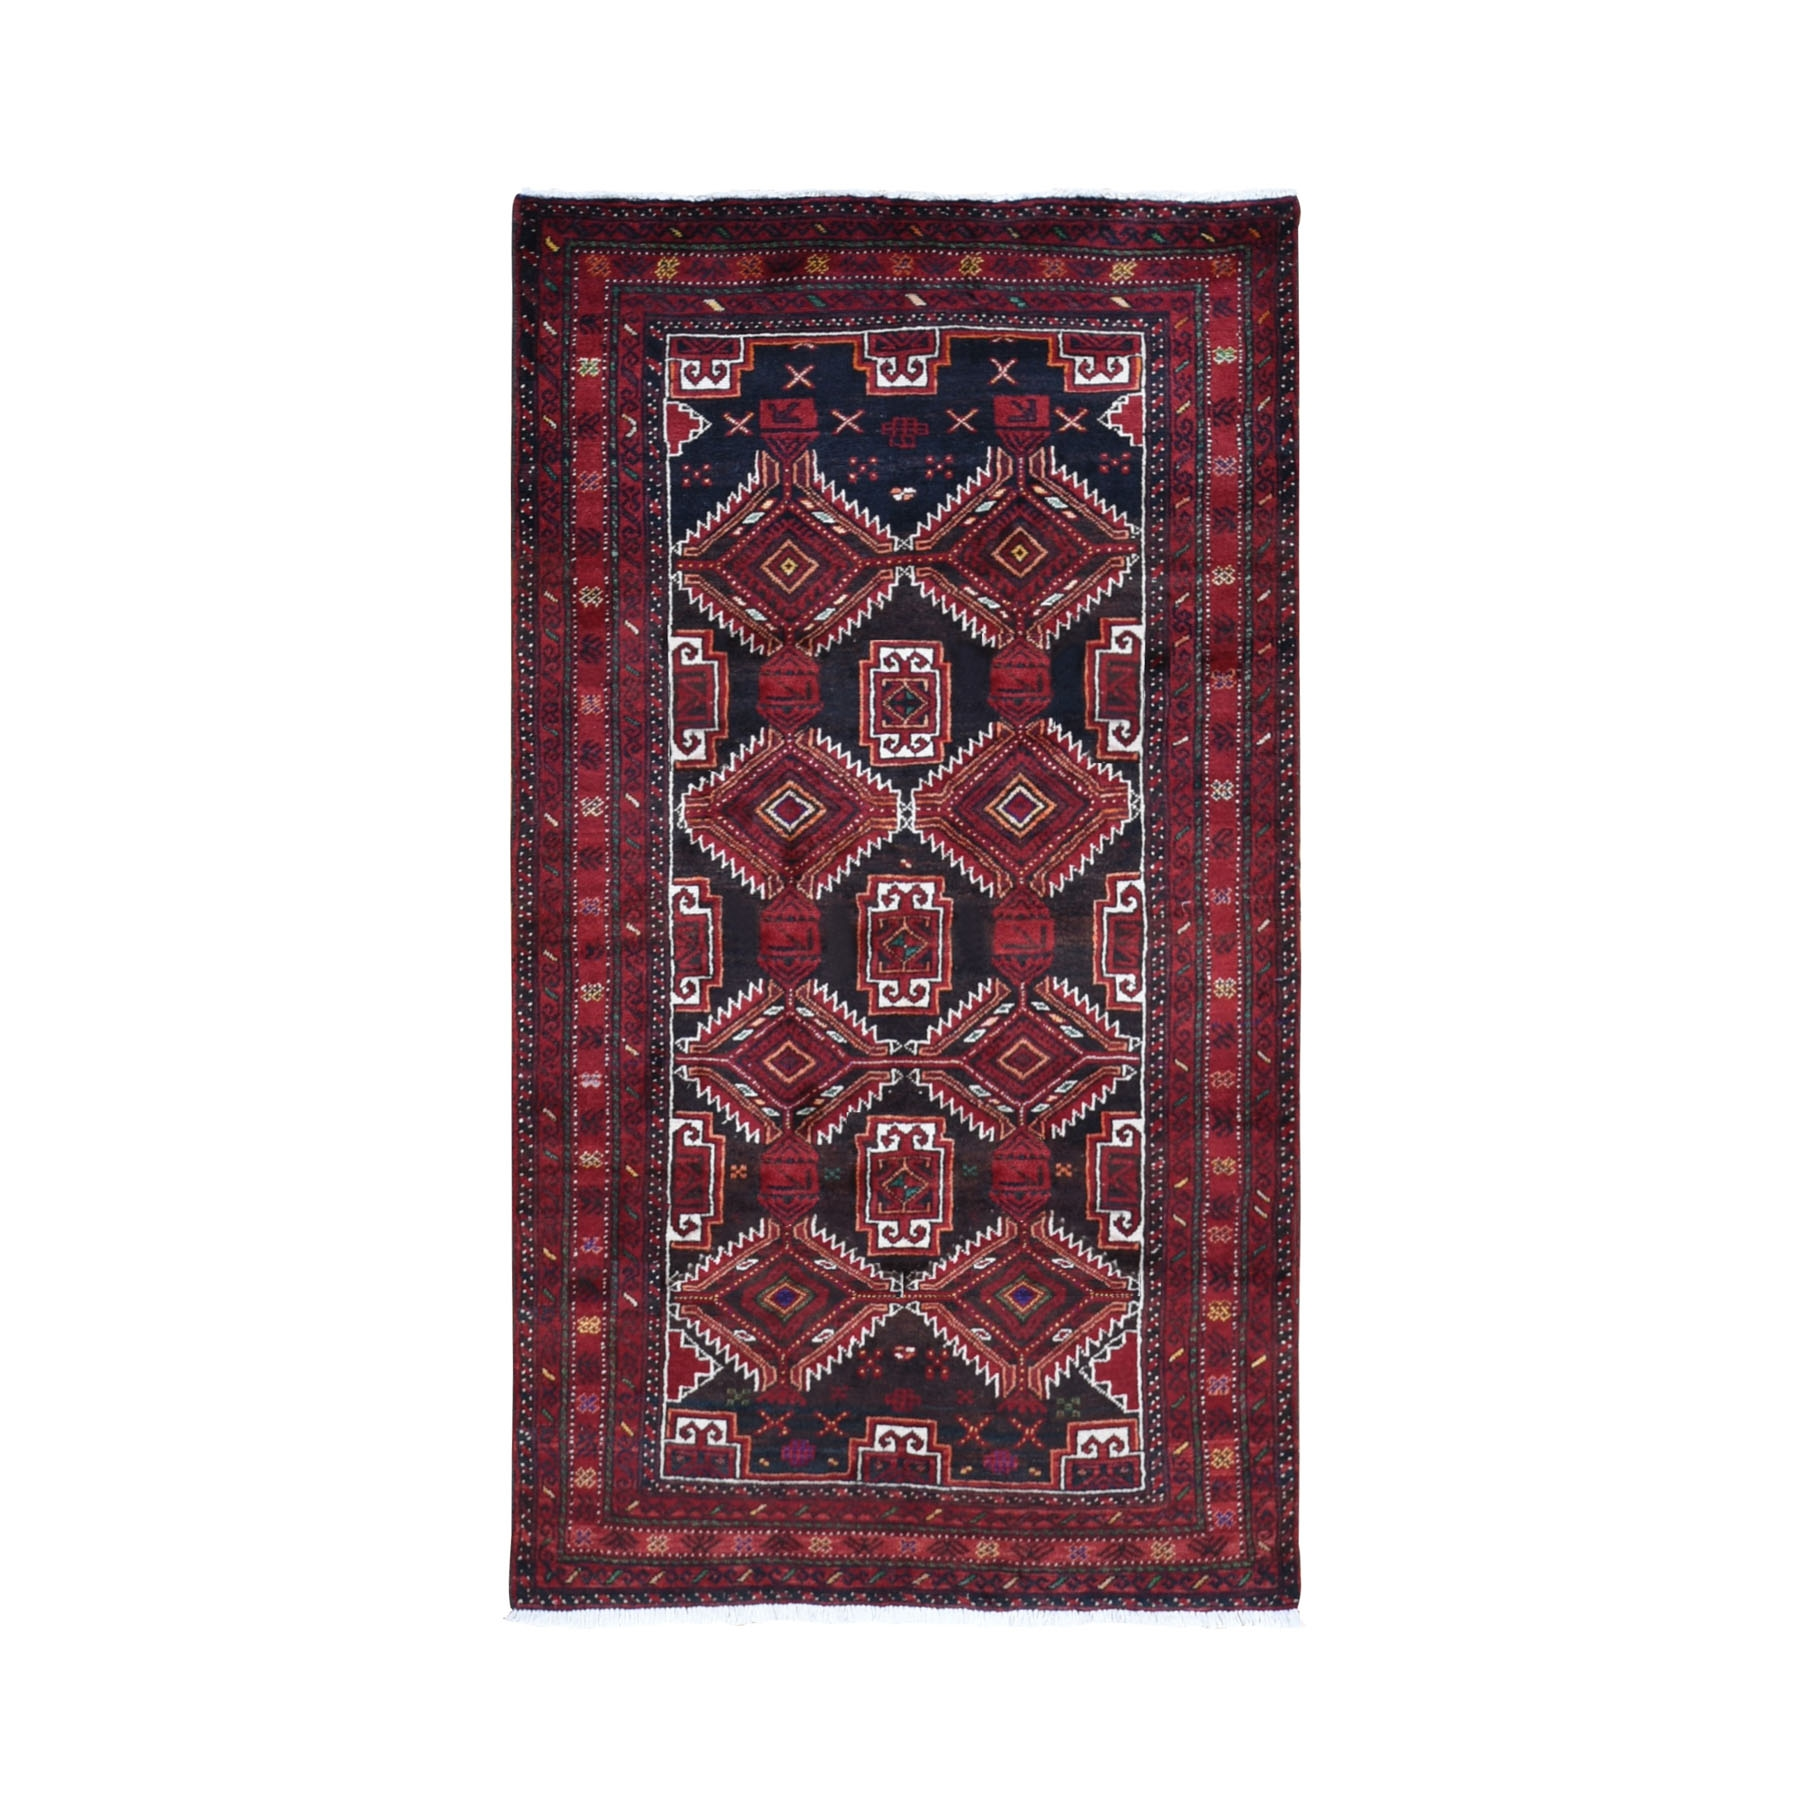 "3'7""x6'5"" Red Vintage Persian Baluch Geometric Design Exc Cond Pure Wool Hand Woven Oriental Rug"